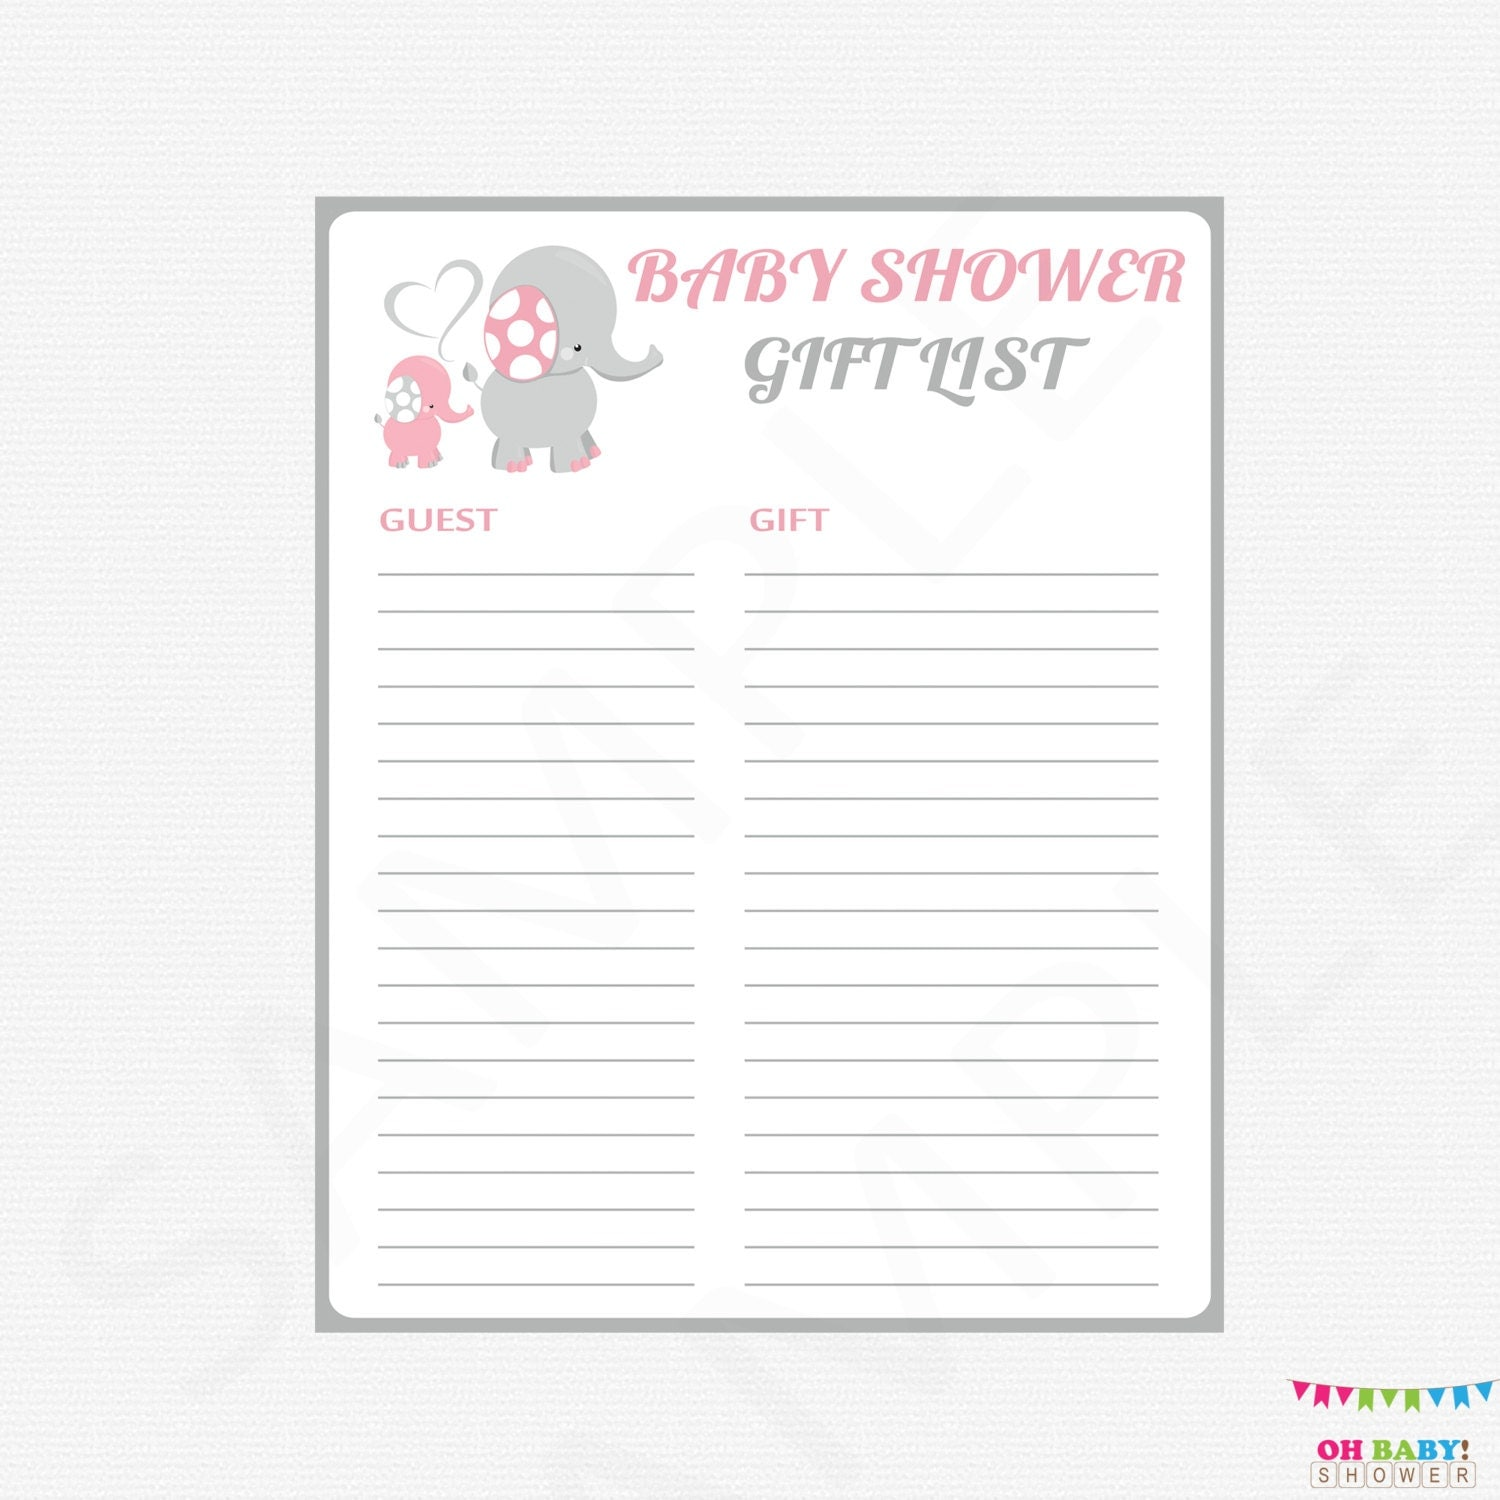 Bridal Shower Gift Record Template : Pink and Gray Baby Shower Gift List Elephant Baby Shower Gift